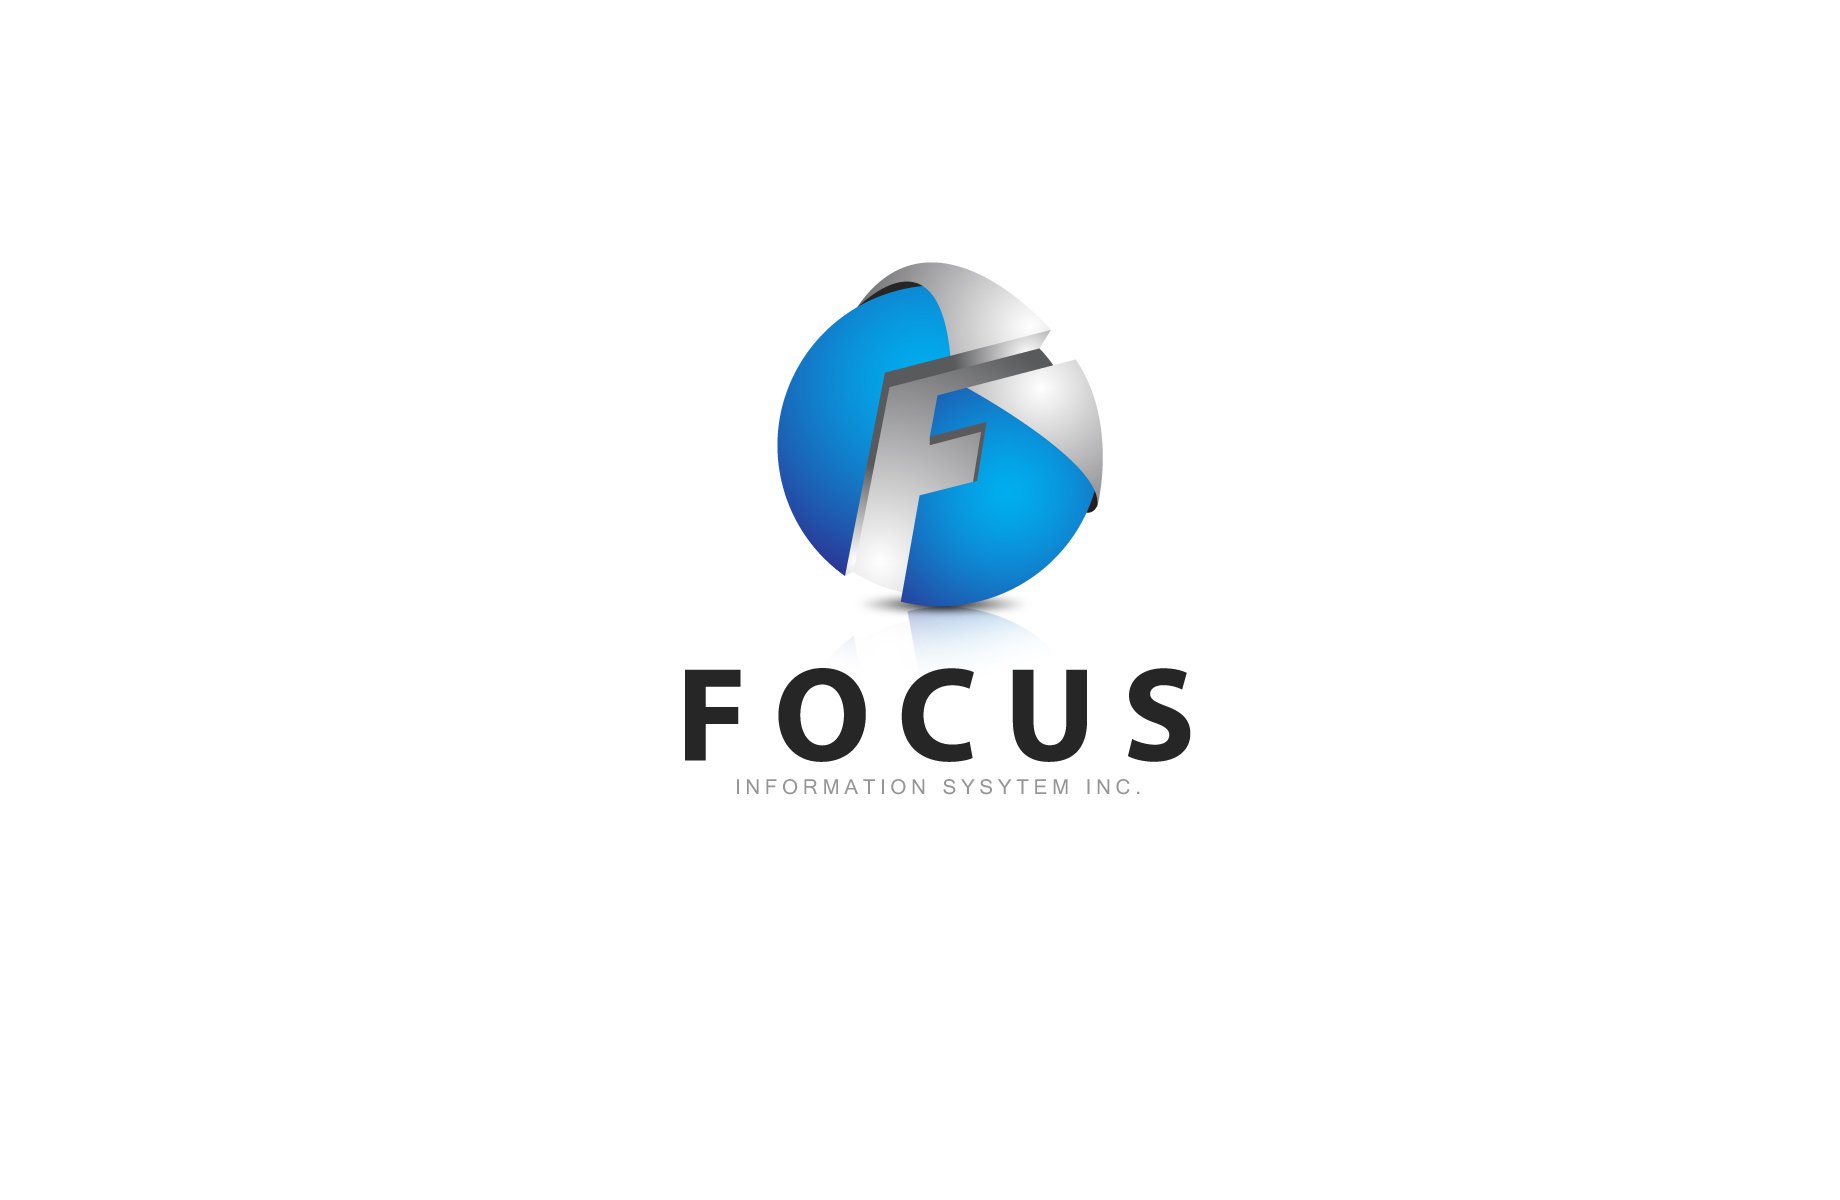 Logo Design by Jan Chua - Entry No. 36 in the Logo Design Contest Artistic Logo Design for Focus Information Systems, Inc..